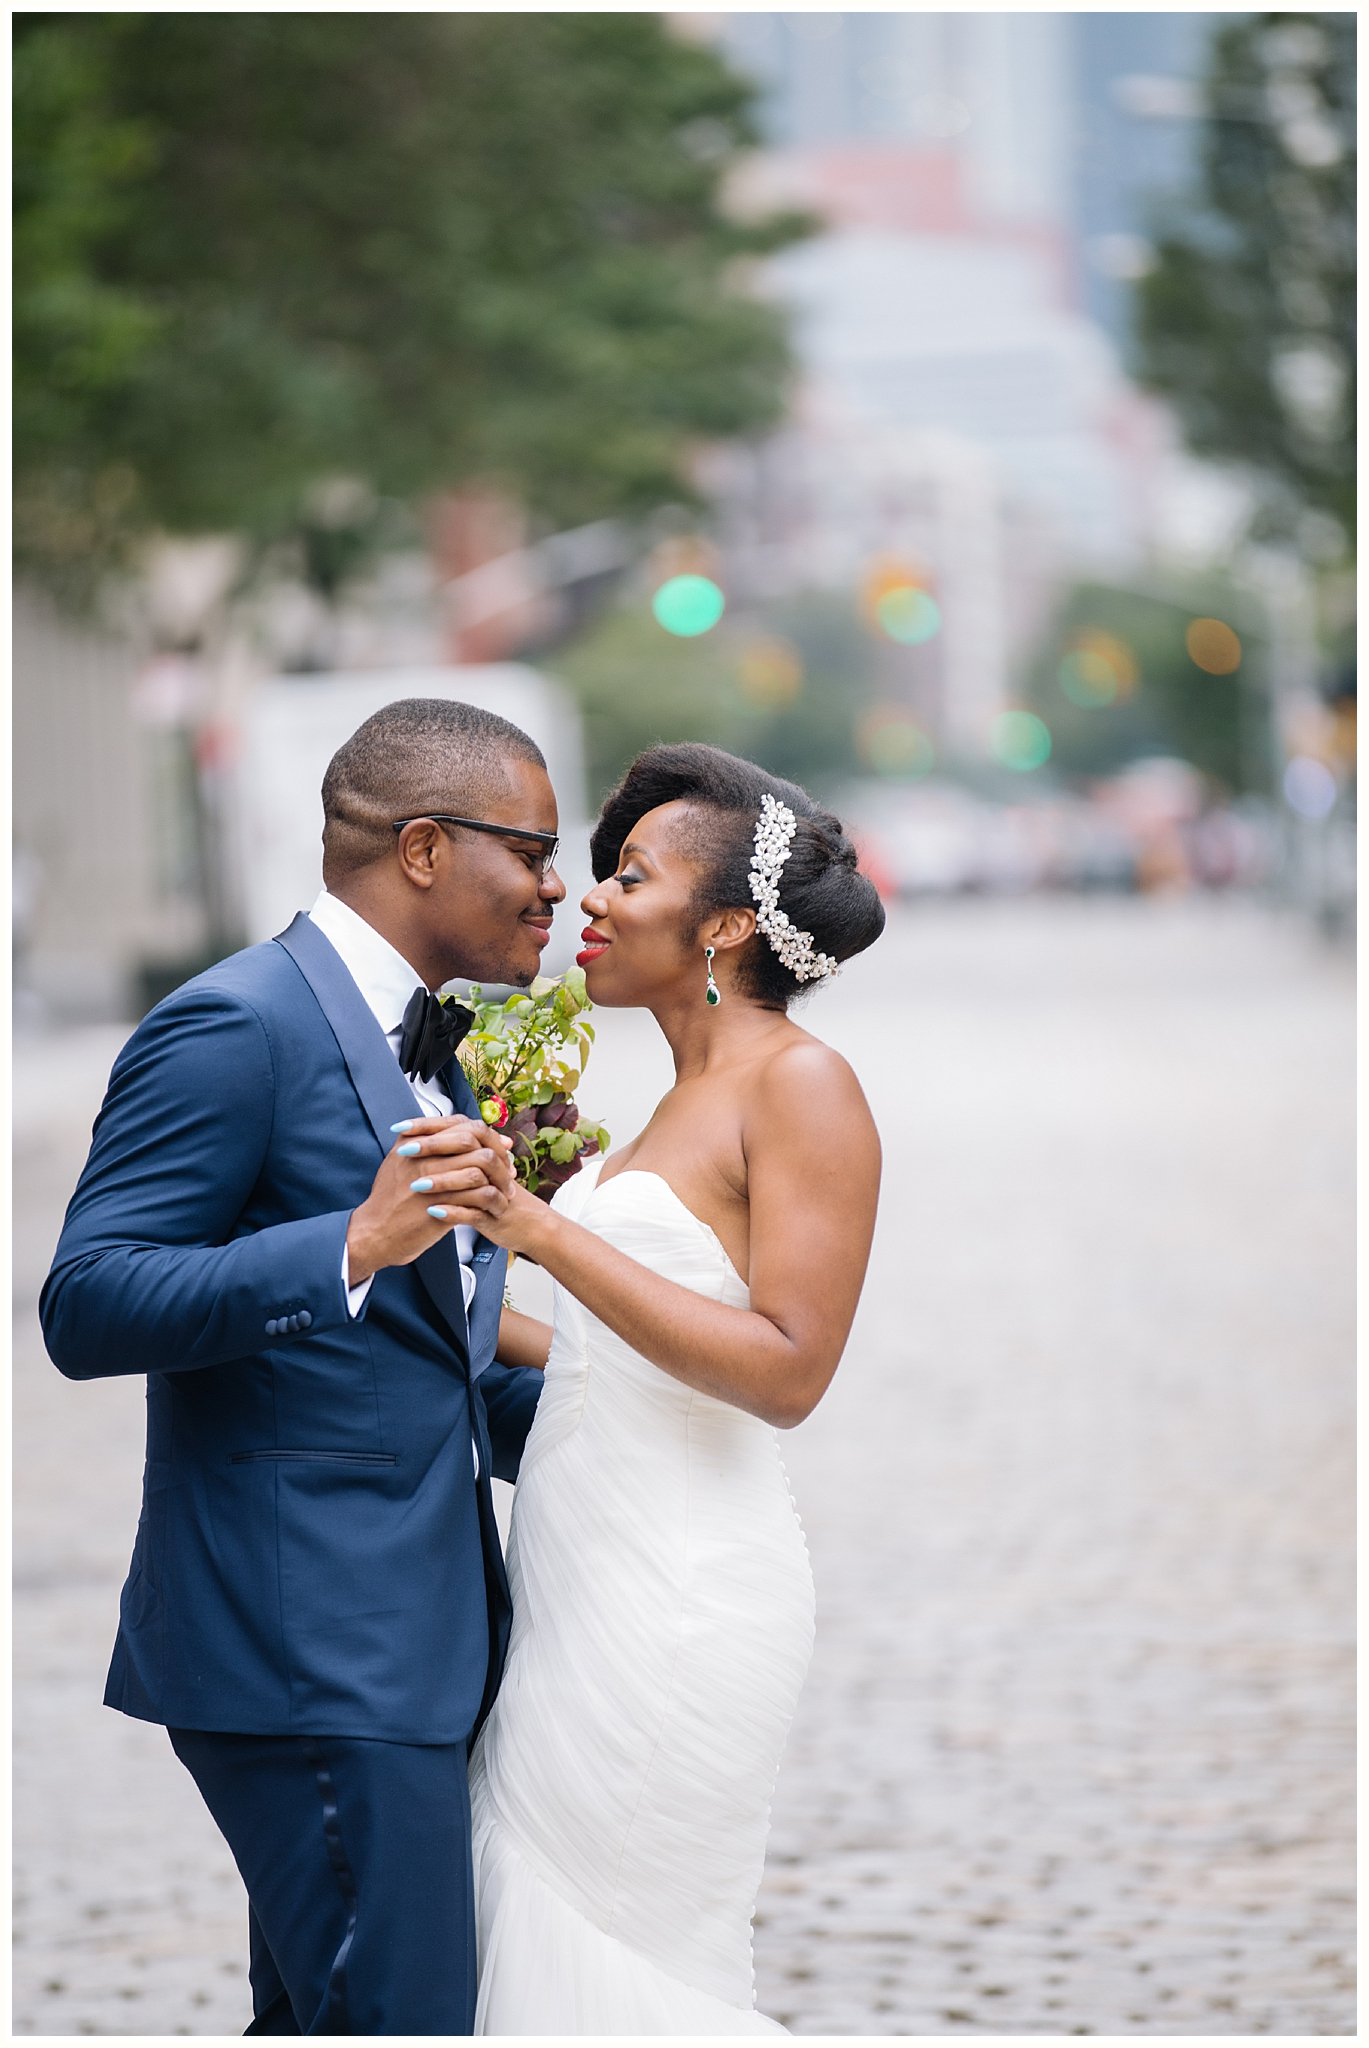 NYC Tribeca Rooftop Wedding Photographer_0024.jpg